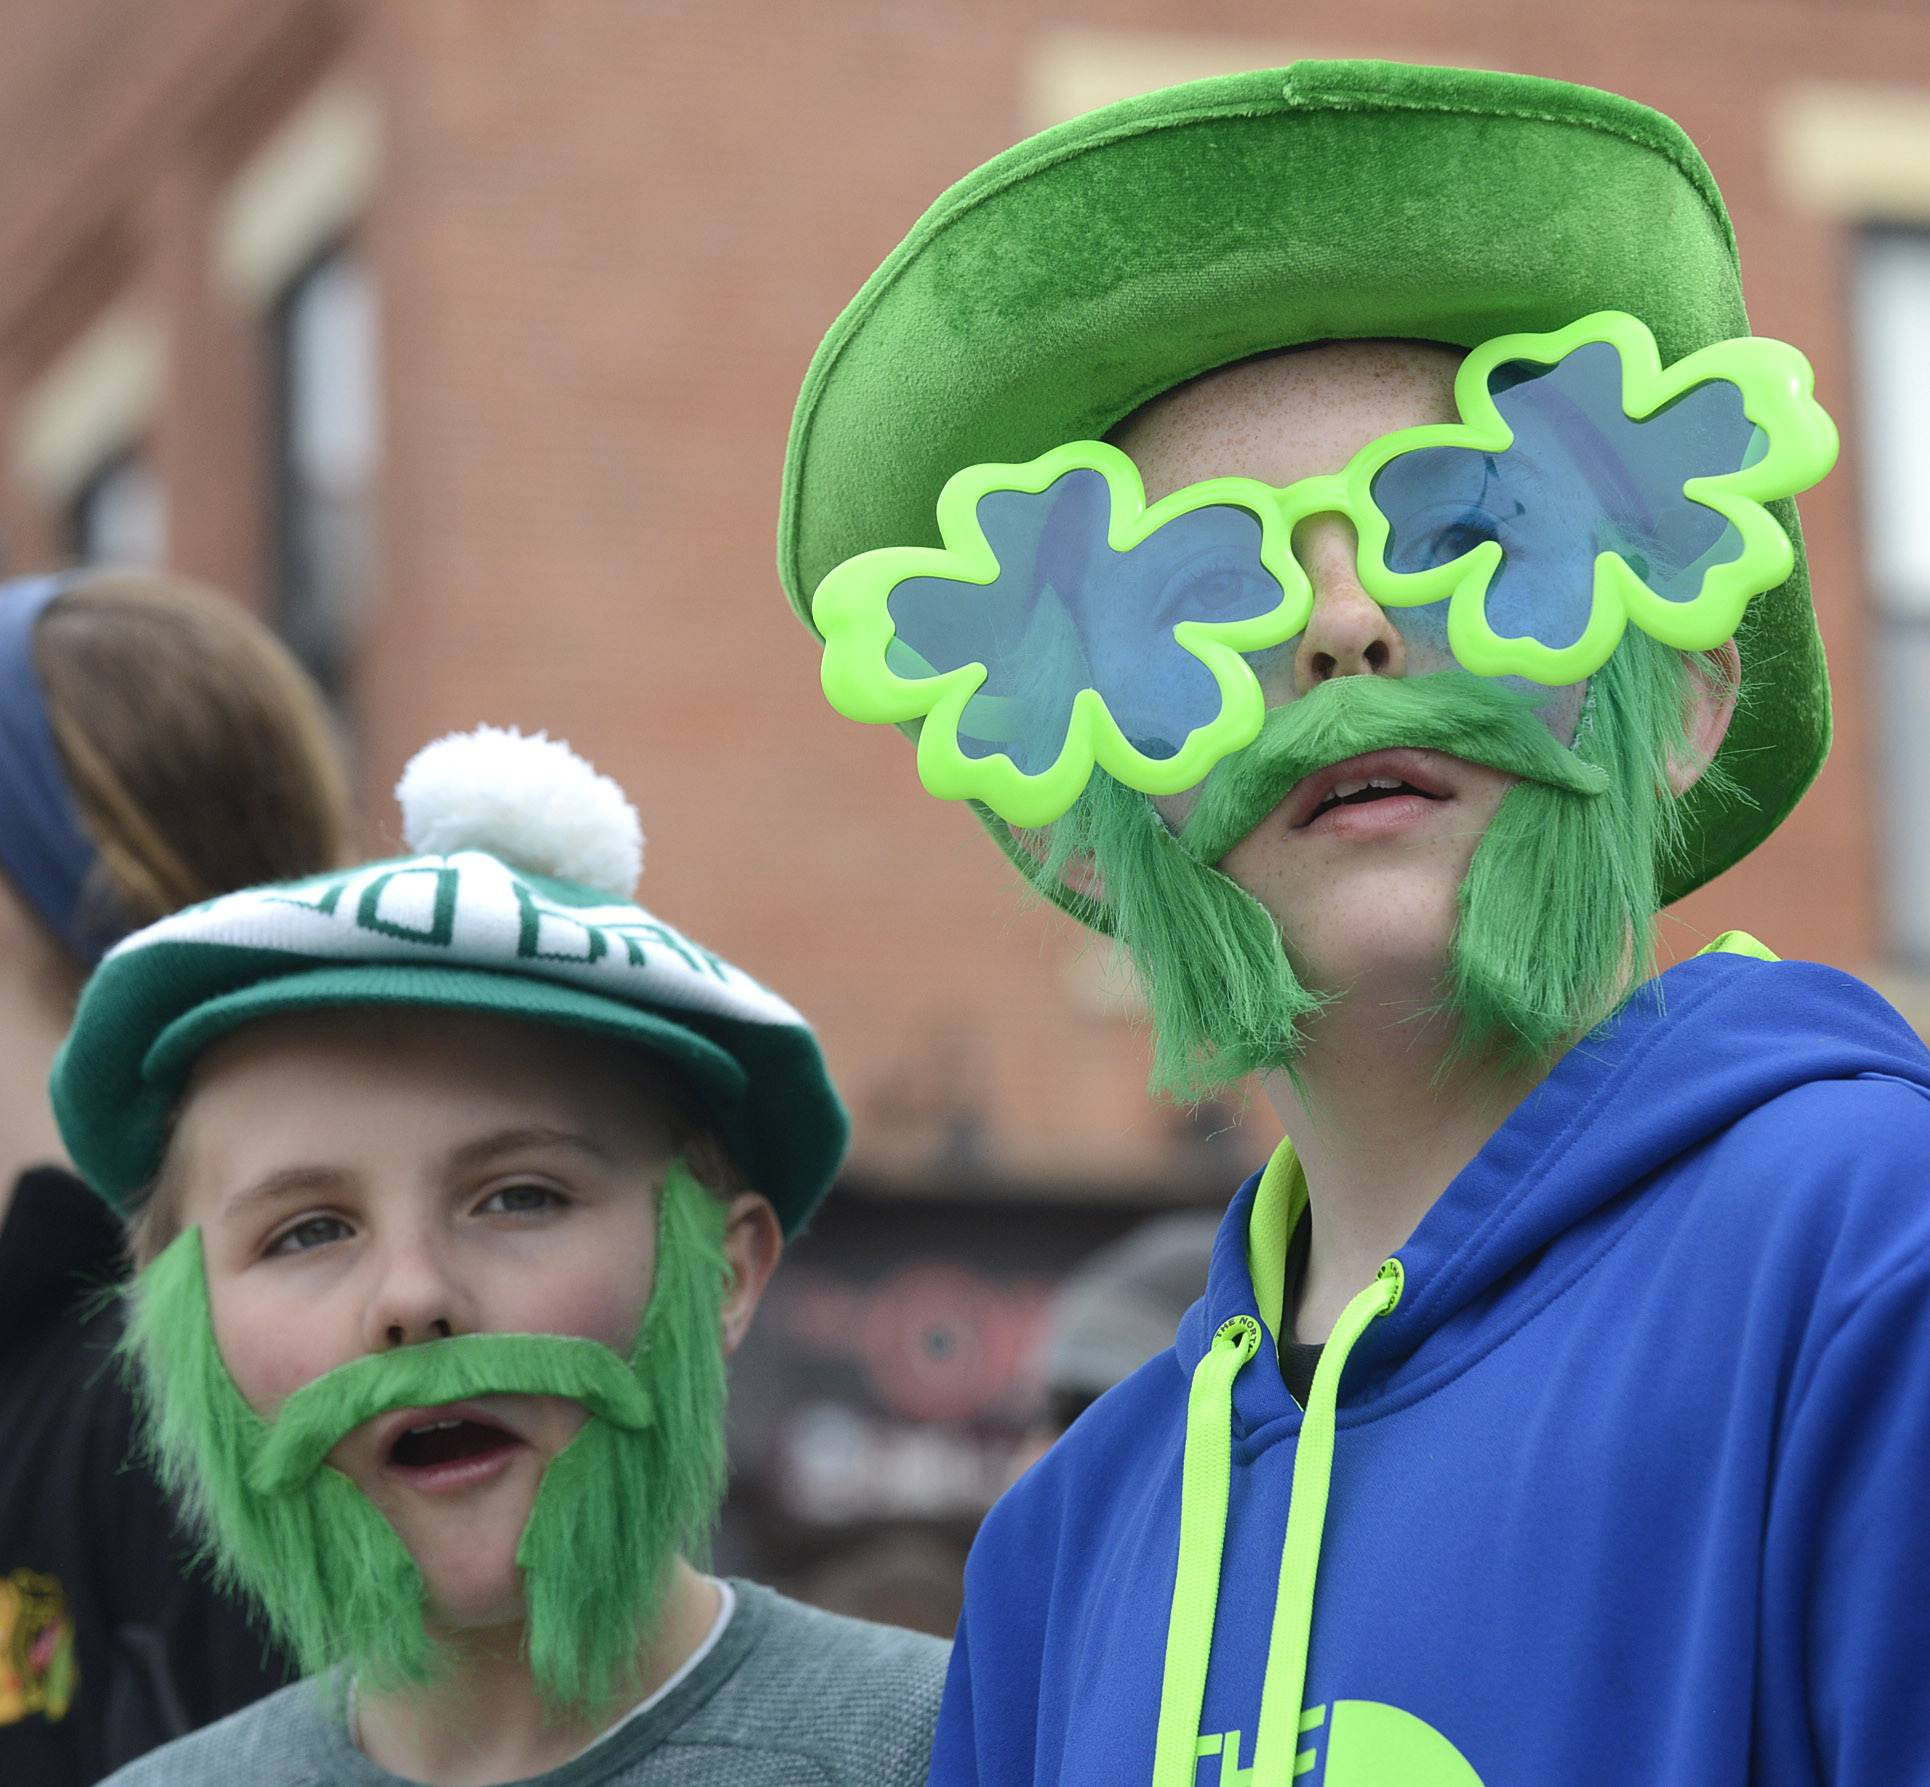 "Collin Goode, 11, left, and Sean O'Connor, 10, best friends from St. Charles, watch the St. Patrick's Day parade in St. Charles on Saturday. The duo, who say they do everything together, come every year to the parade.  ""We really enjoy being Irish,"" said Collin with a smile."